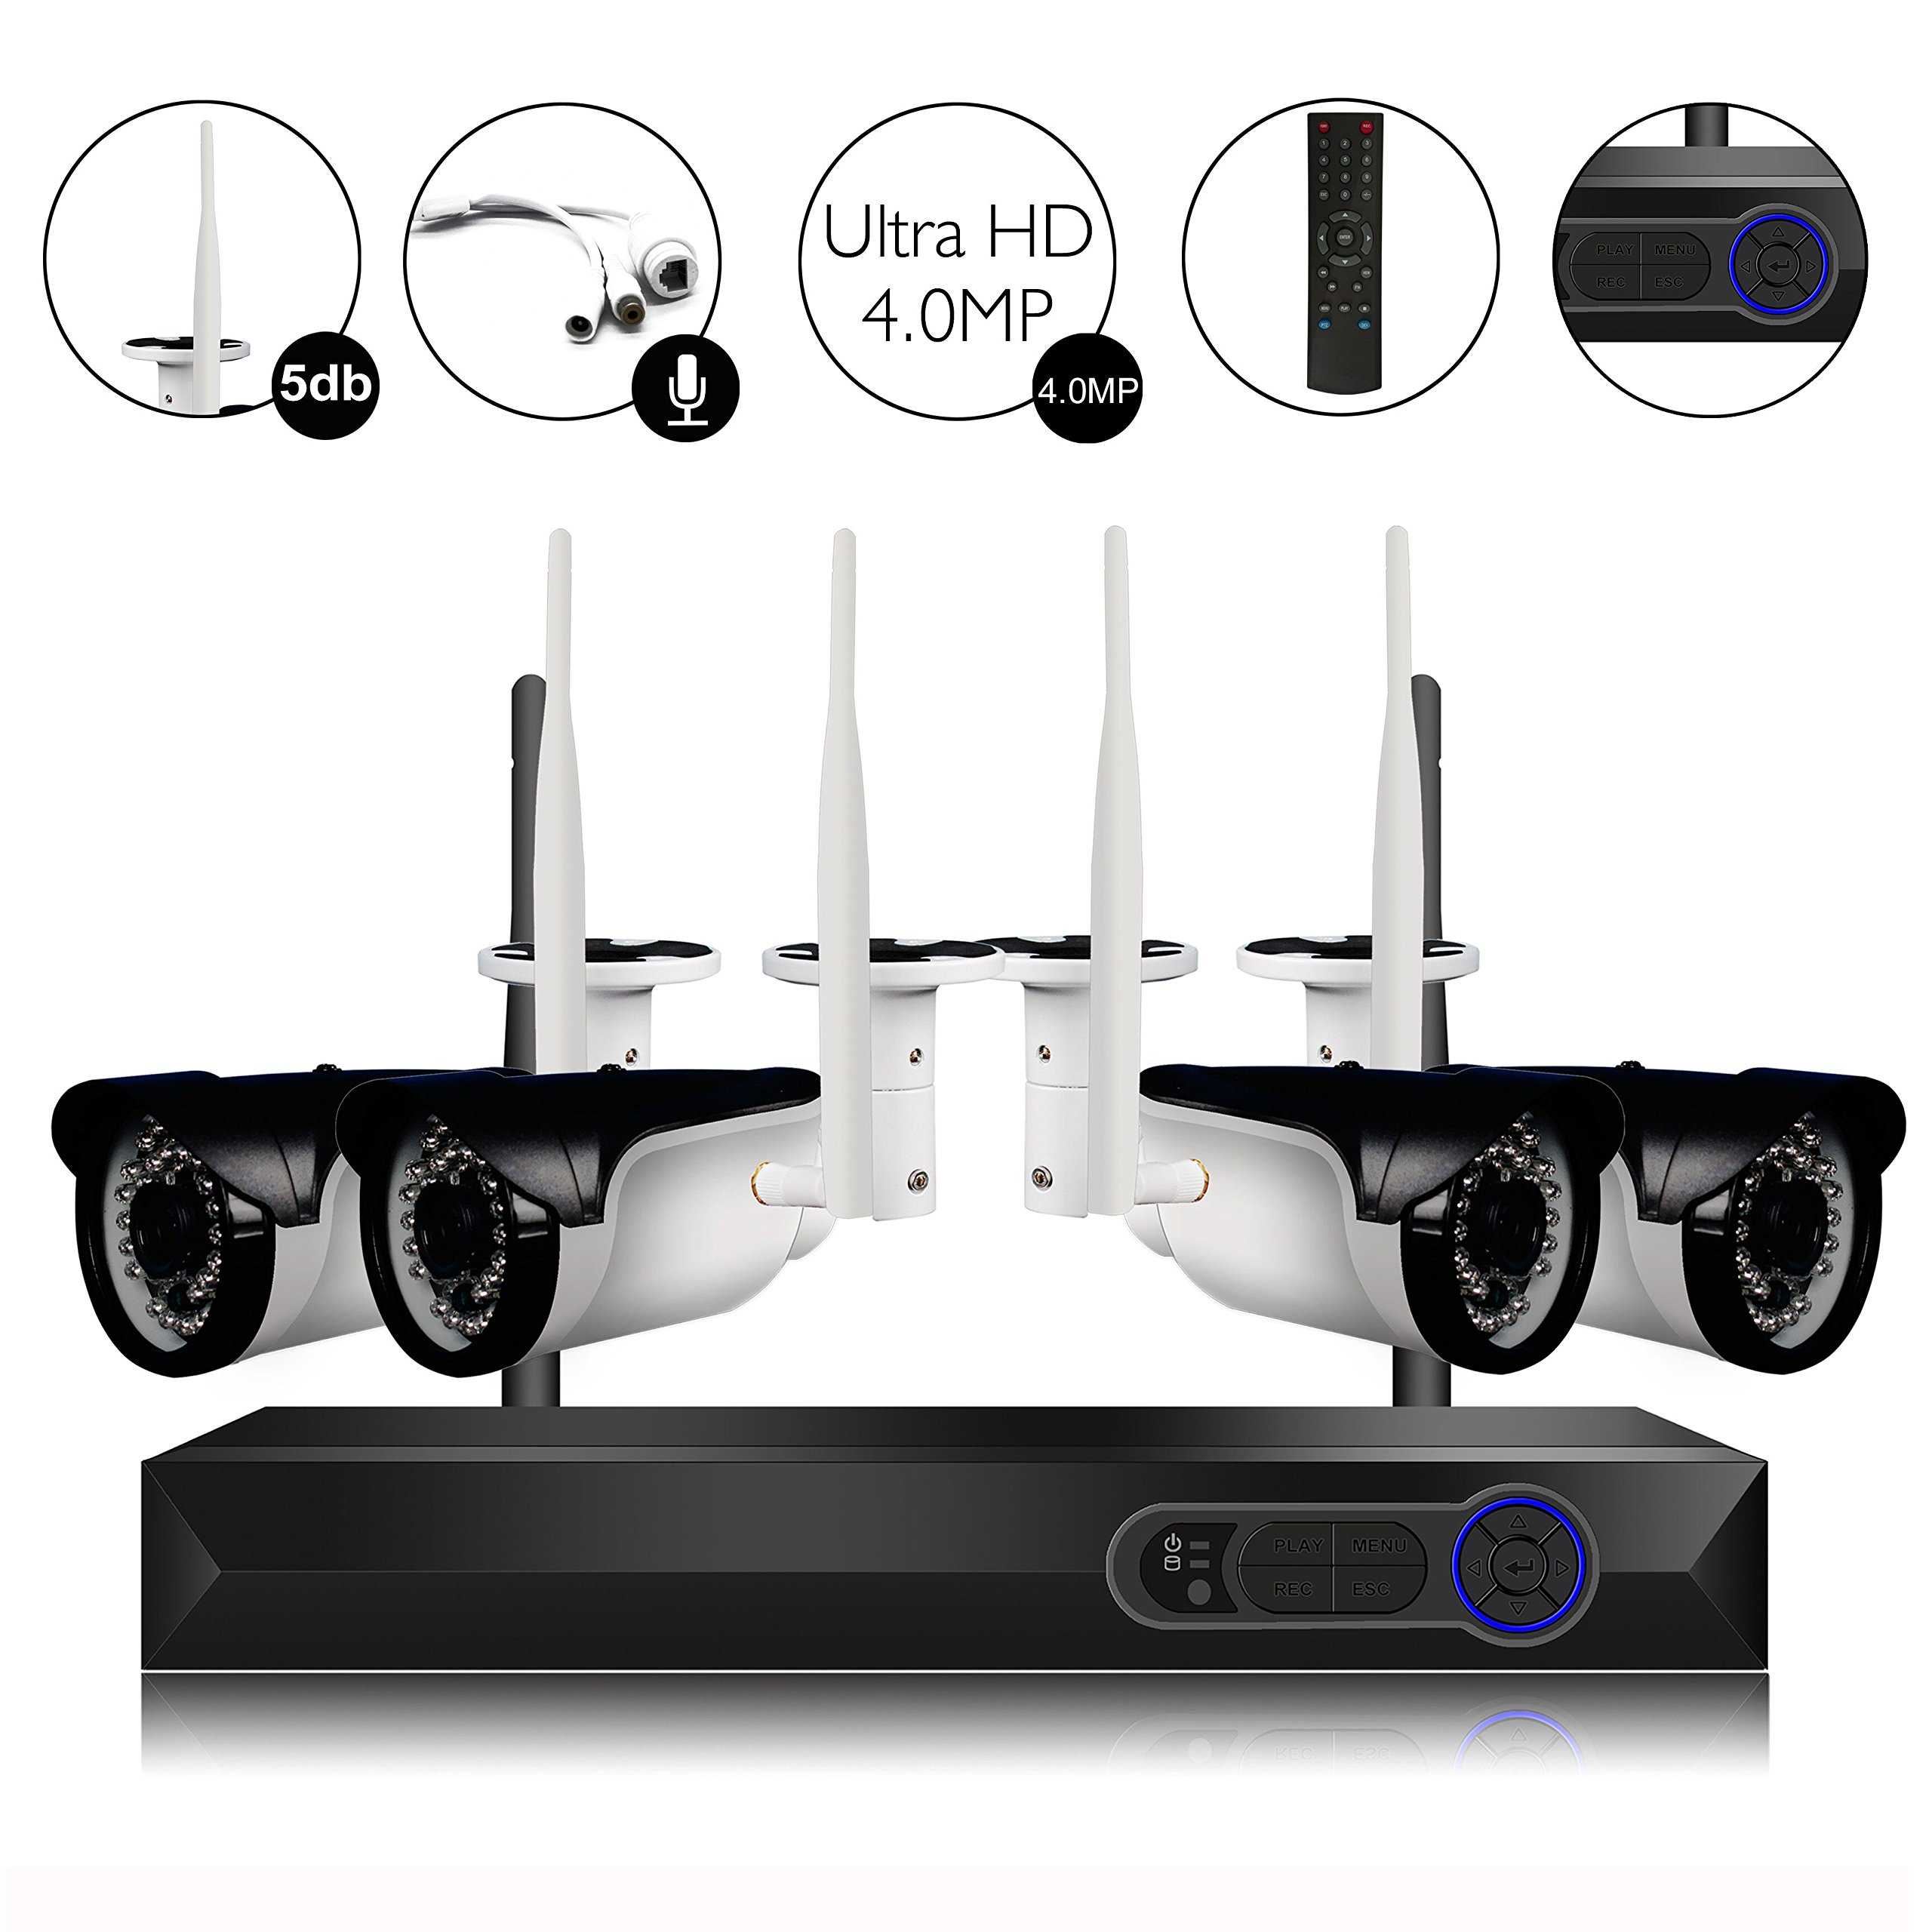 CAMVIEW 4CH 2592x1520P Wireless Security CCTV Surveillance System WiFi NVR Kits, 4 x 4.0MP Wireless Indoor/Outdoor IP Cameras, Microphone Plug, Night Vision, Ultra HD, HDD not Included